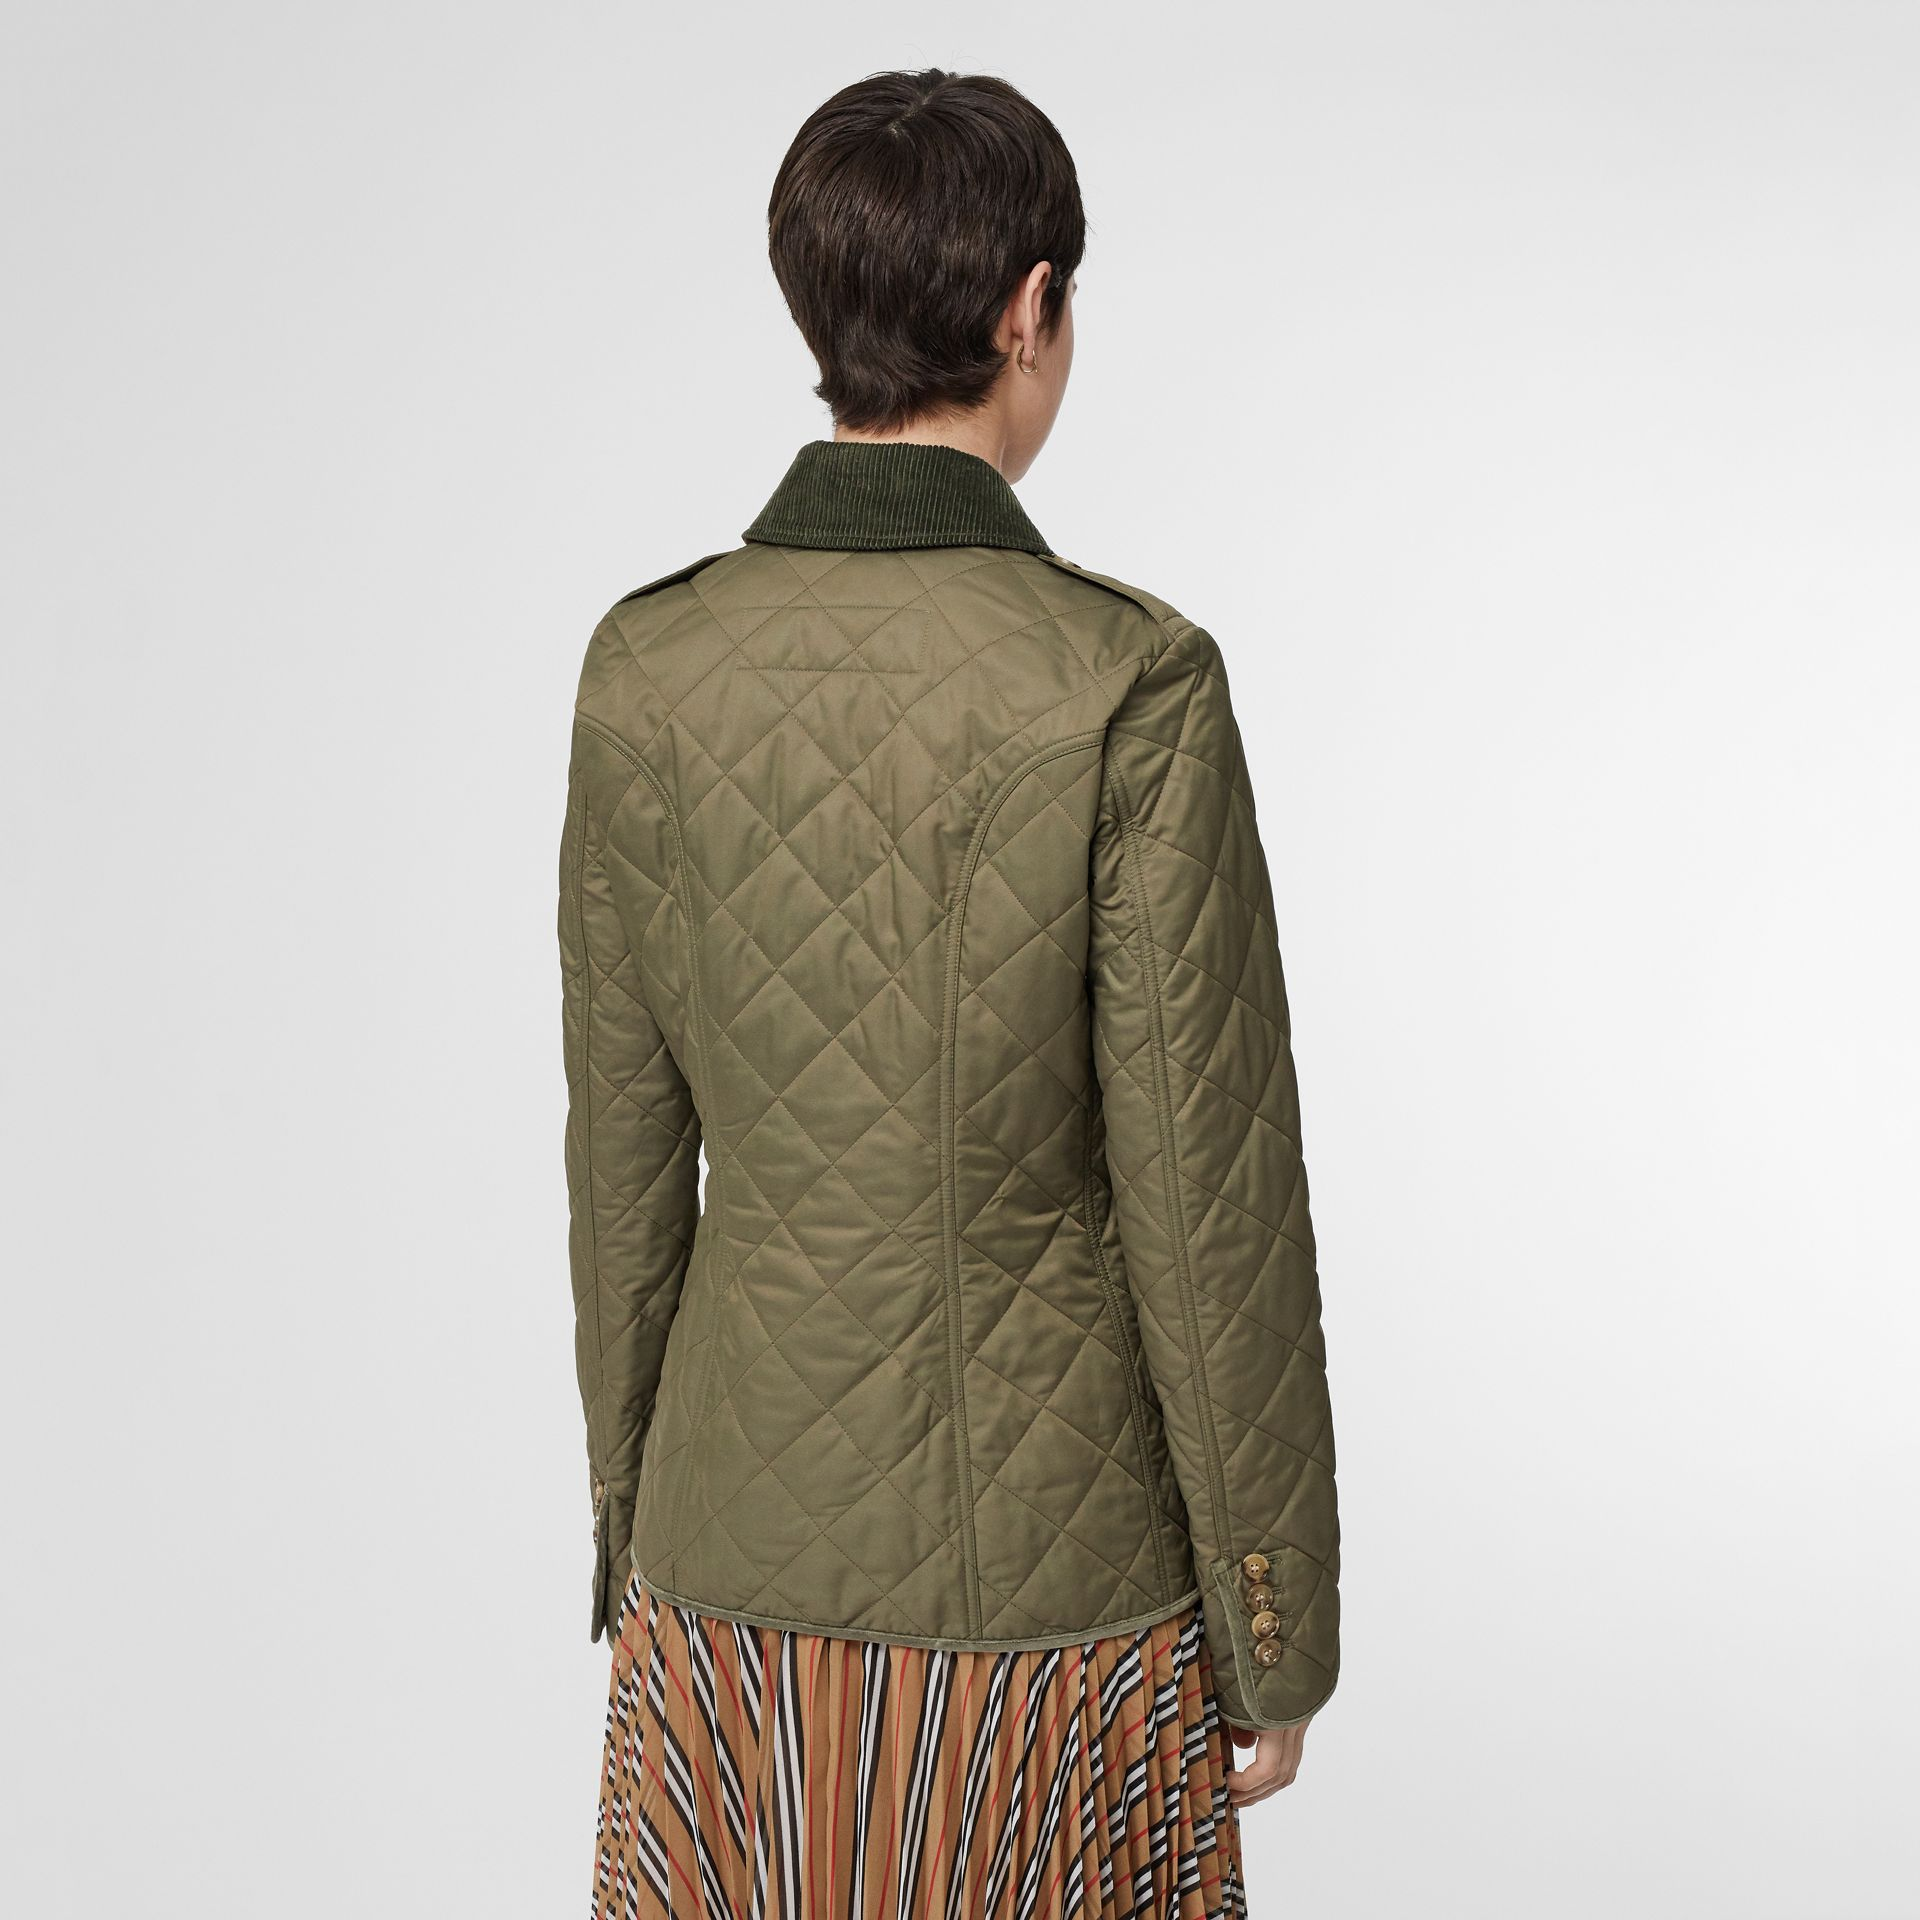 Monogram Motif Diamond Quilted Jacket in Olive Green - Women | Burberry Canada - gallery image 1